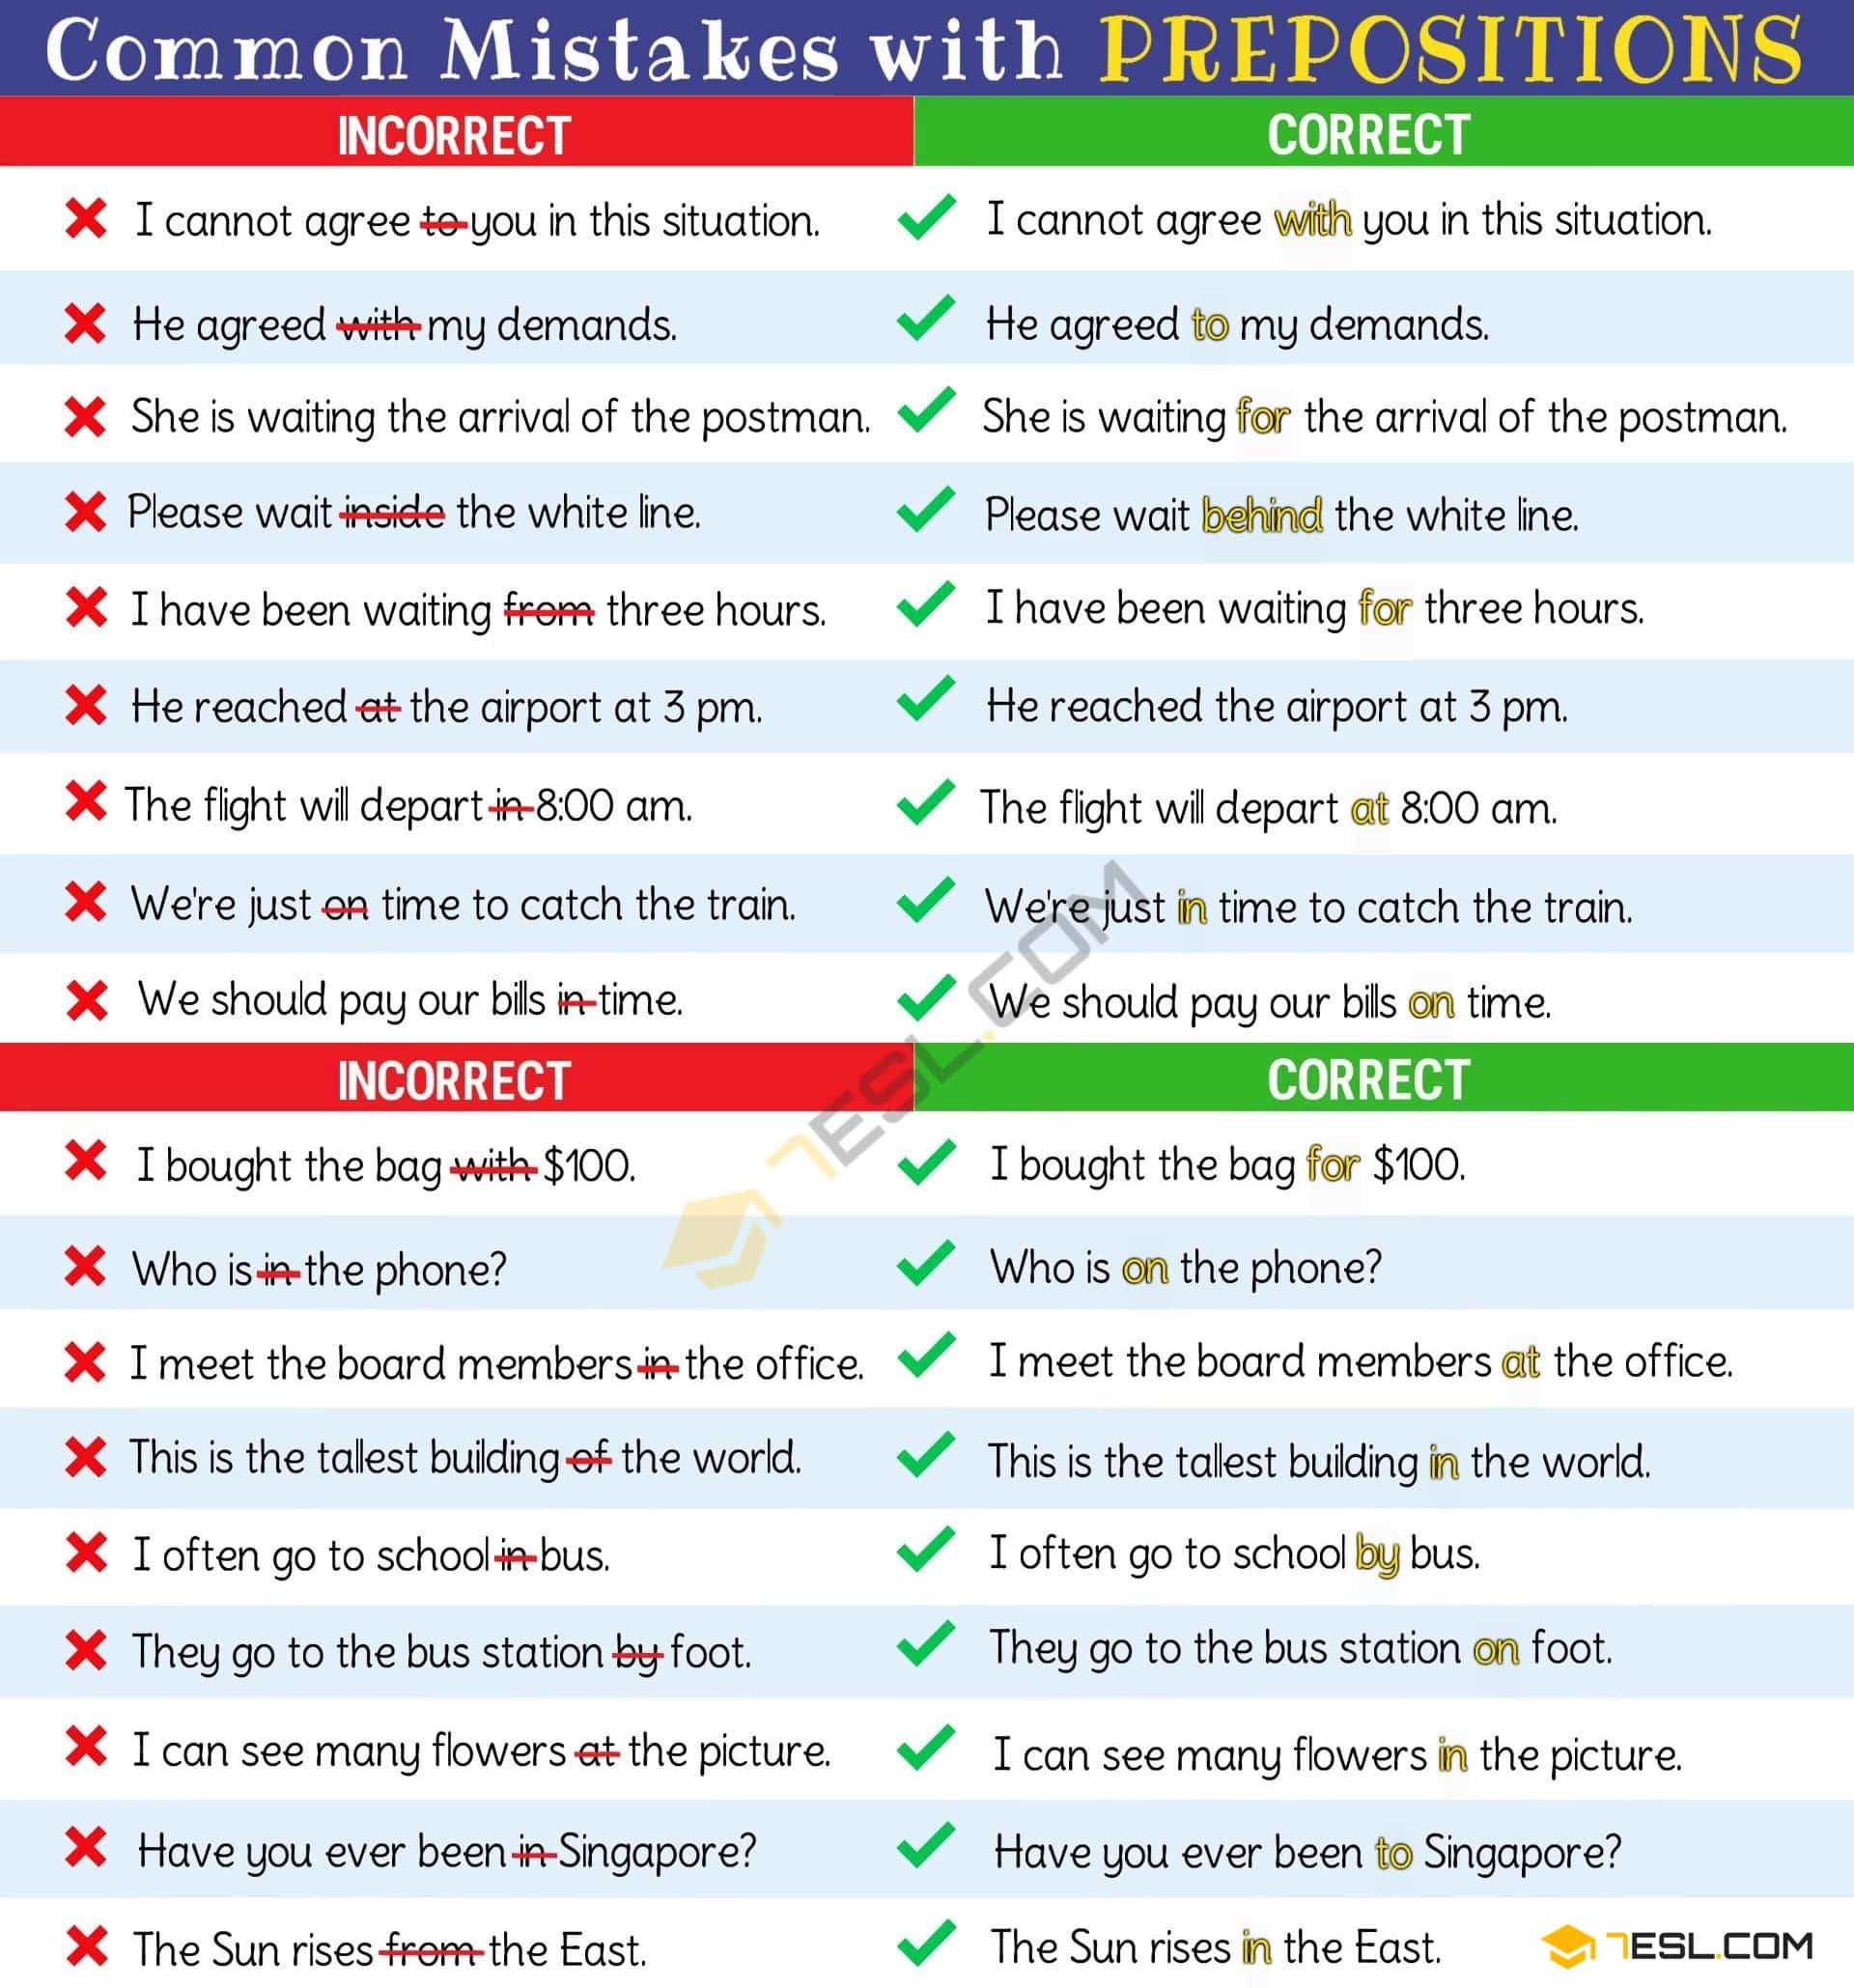 Common Preposition Errors | Image